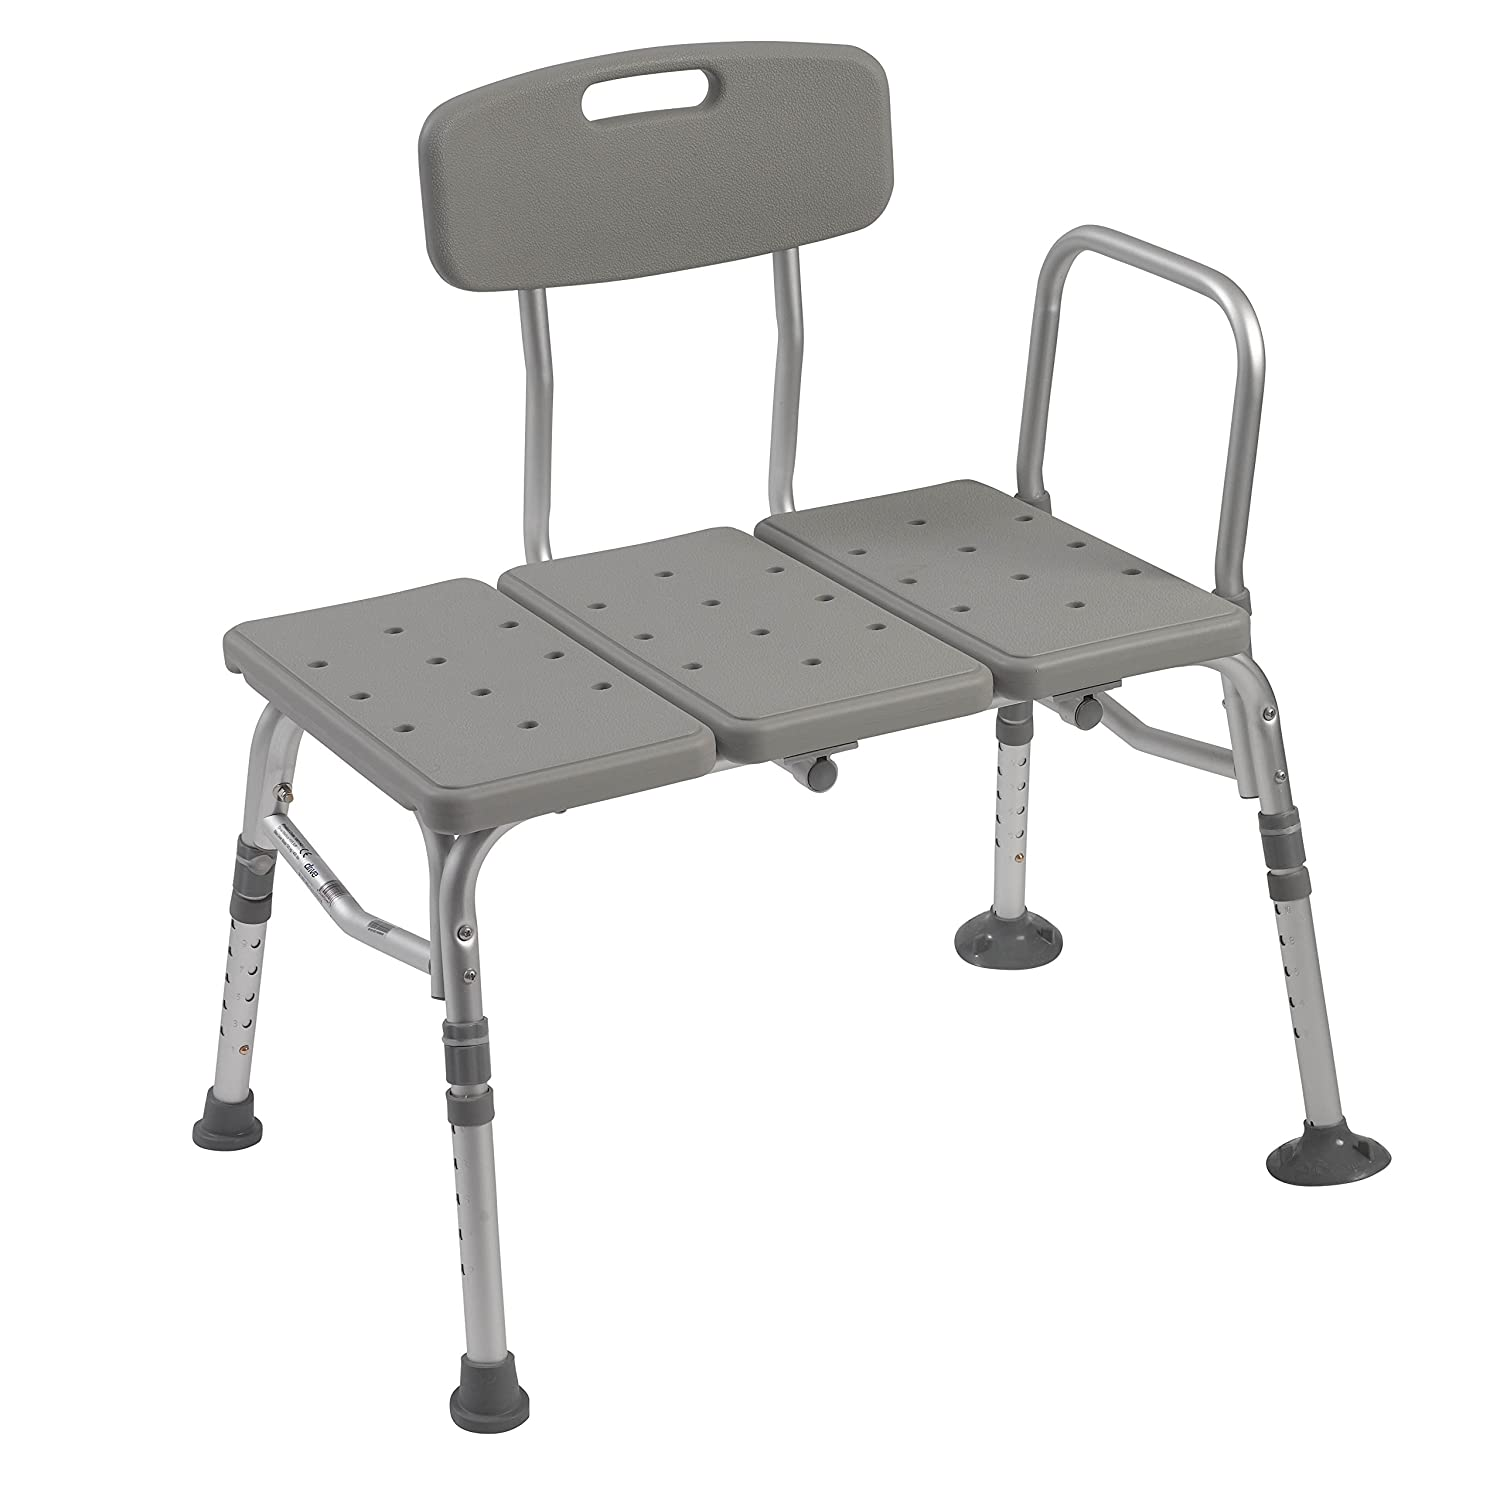 Amazon.com: Plastic Tub Transfer Bench with Adjustable Backrest ...